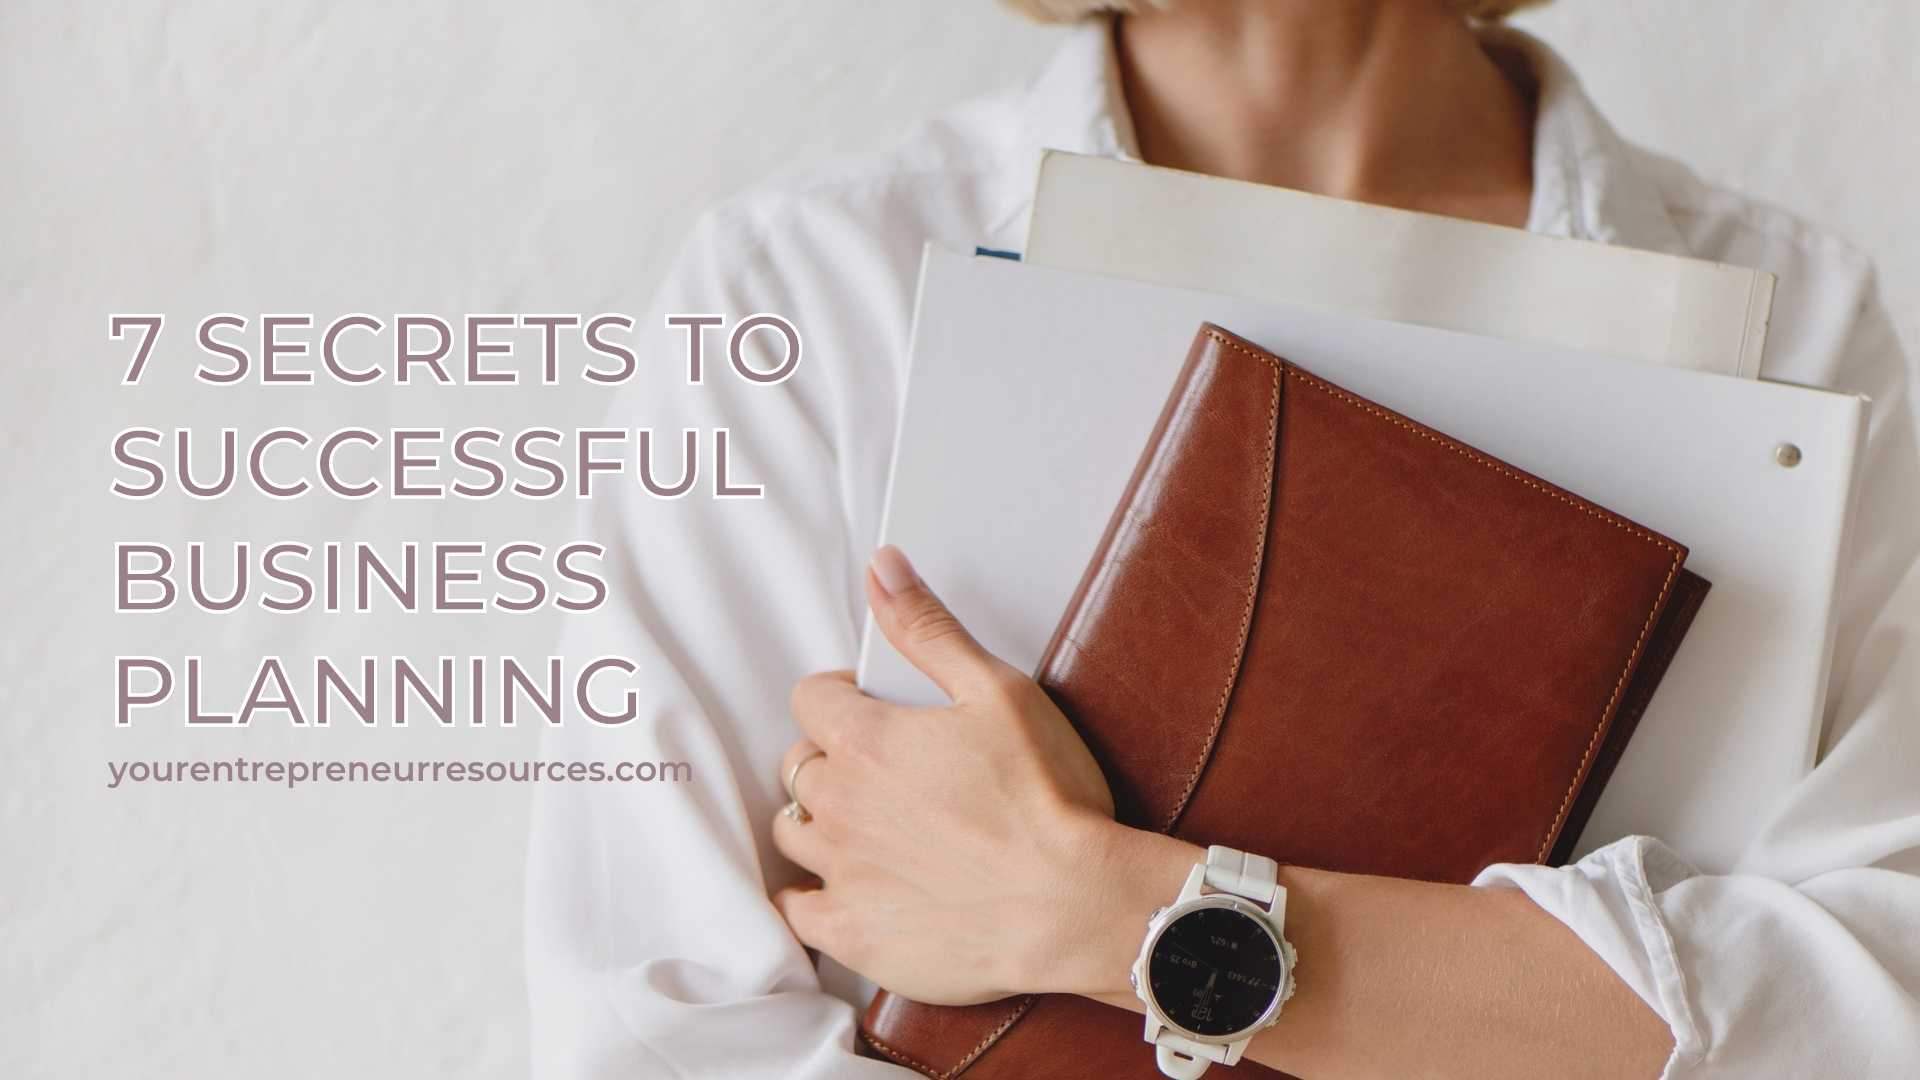 7 Secrets to Successful Business Planning & What it can do for your business